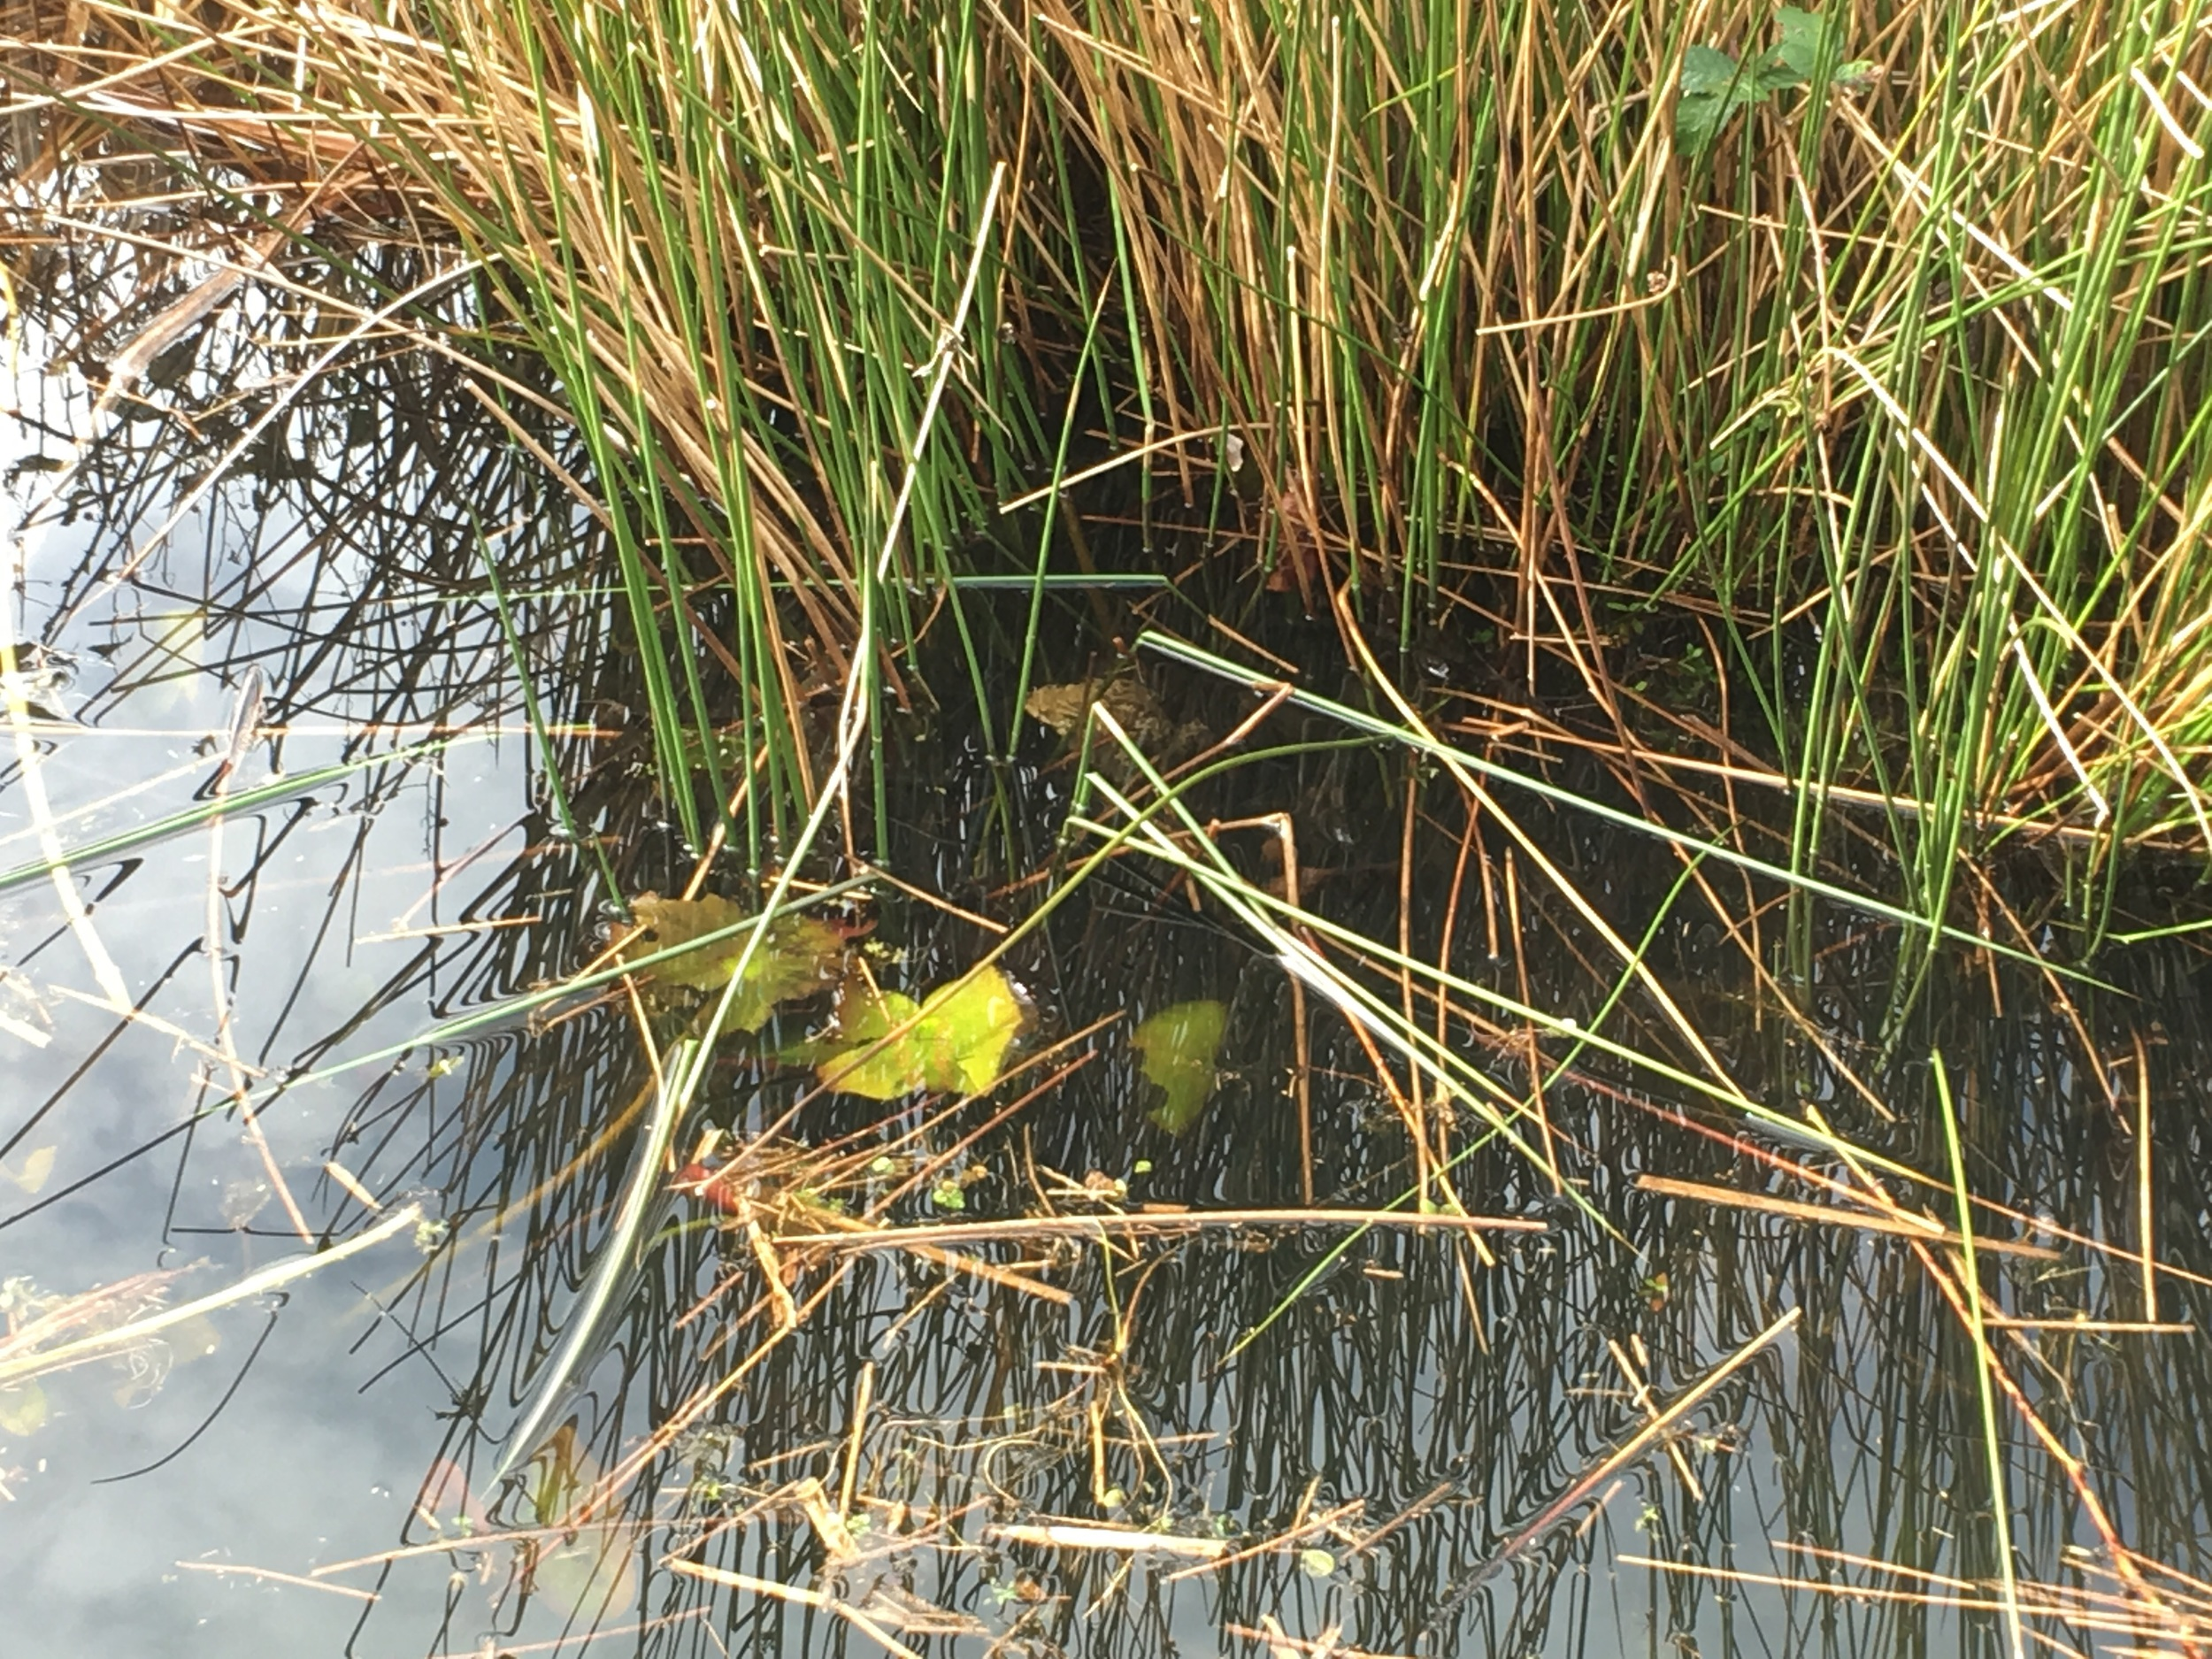 Can you see the frog in the reeds?